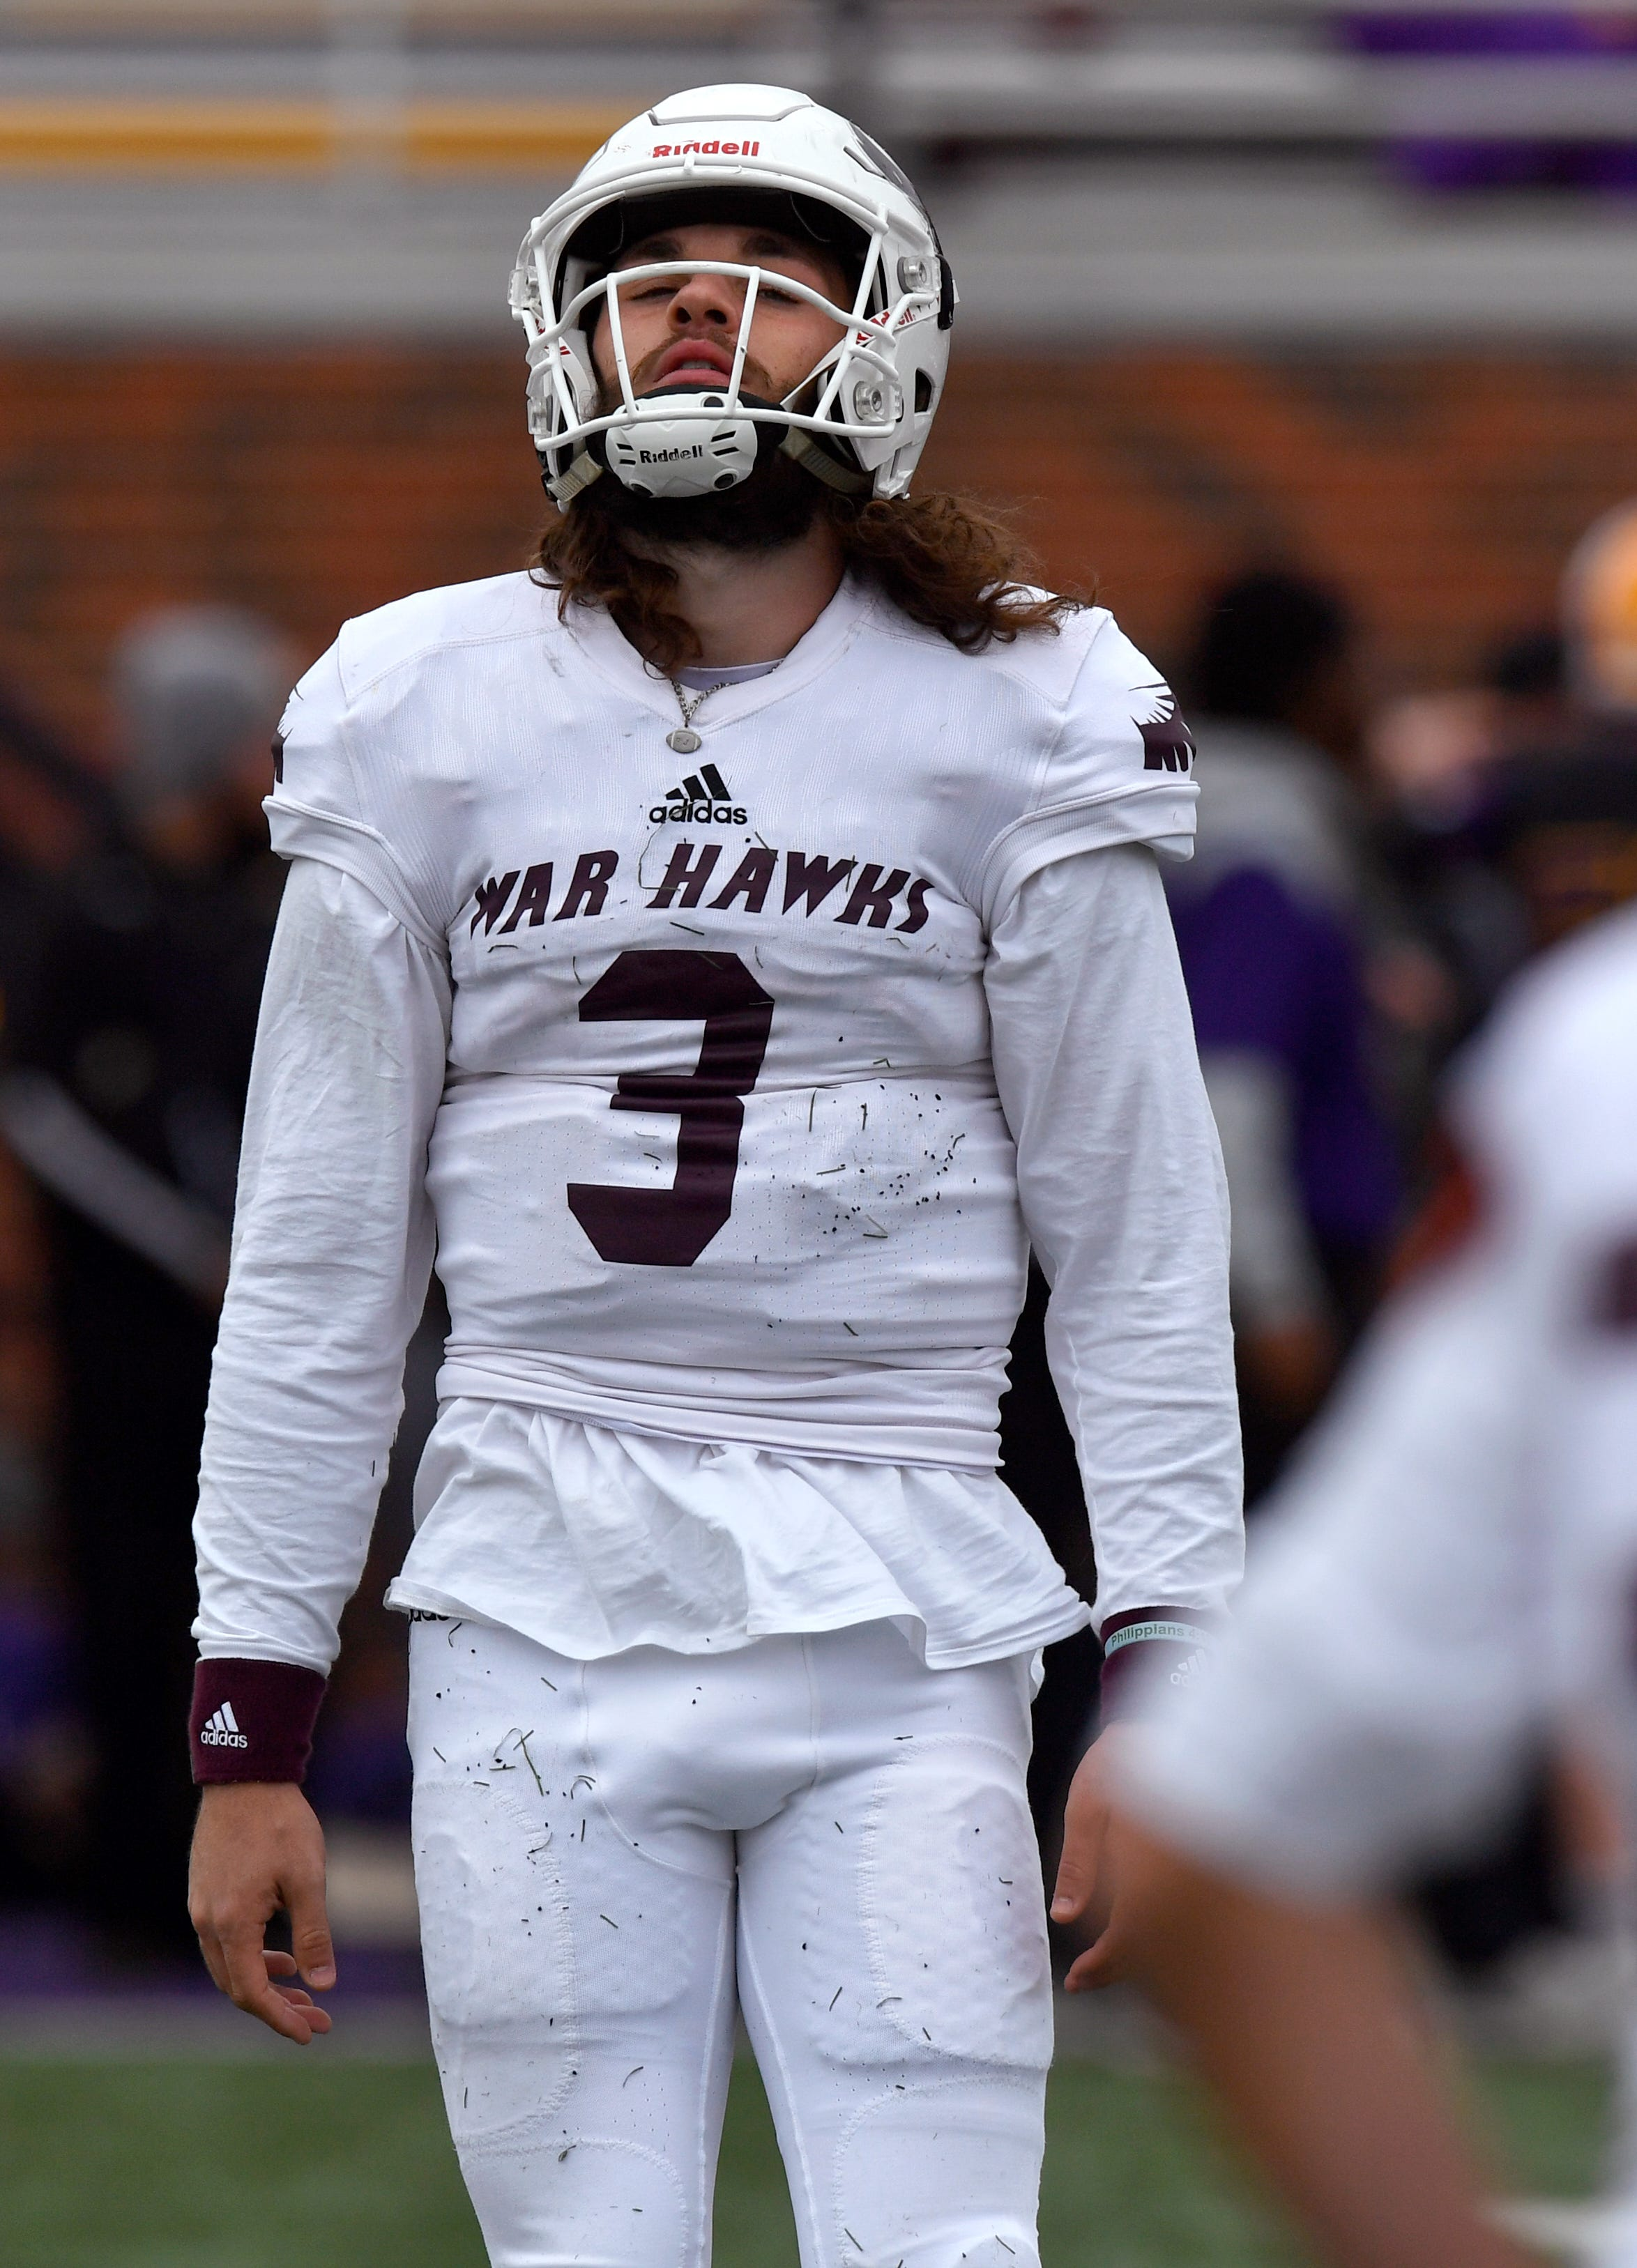 War Hawks quarterback Kevin Hurley Jr. expresses his frustration as McMurry University came up short against the Cowboys defense Saturday at Shelton Stadium. Hurley threw for his team's only touchdown, in the second quarter.